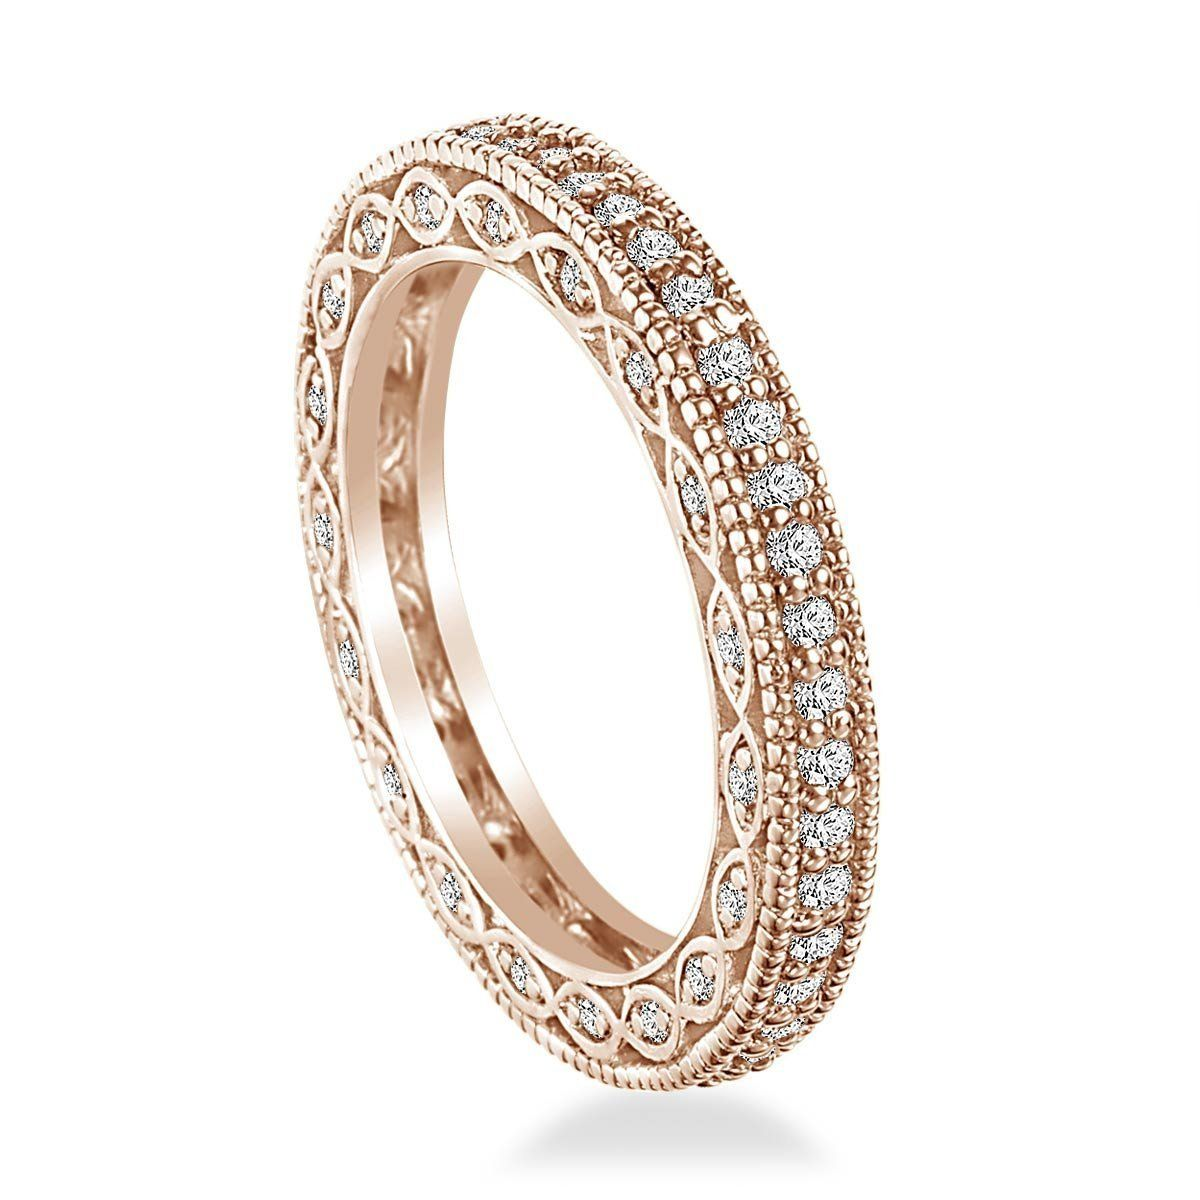 Vintage style wedding band i actually like the rose gold too